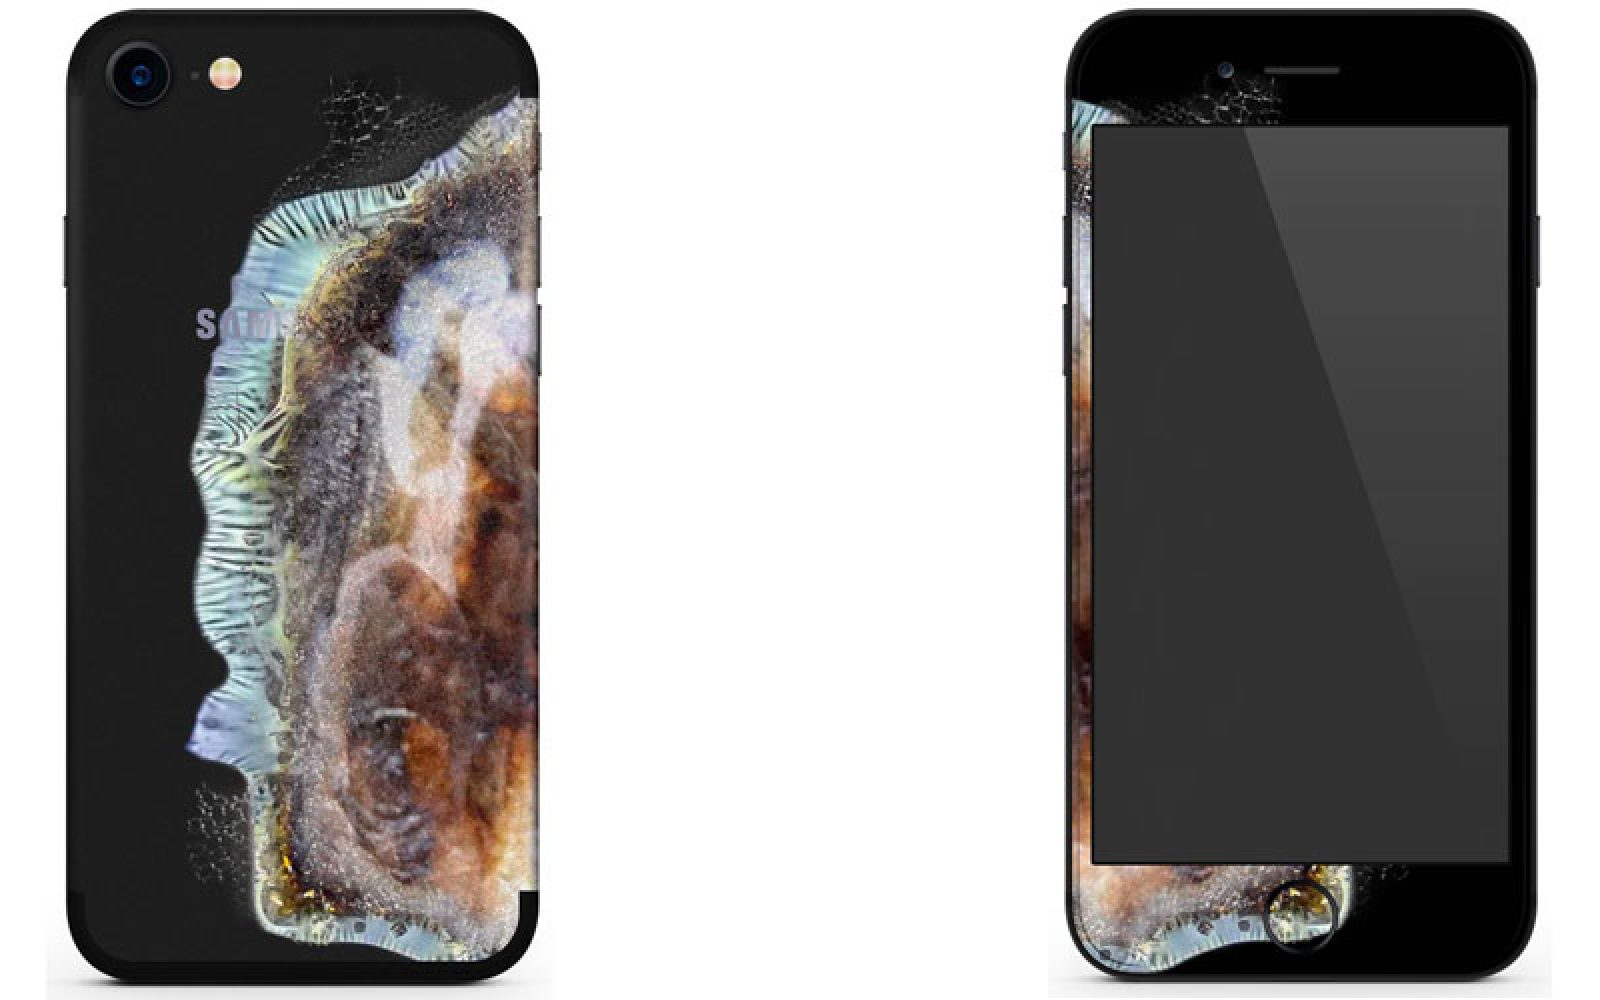 newest f7e6b f5ee0 Feeling your iPhone isn't quite as hot as a Samsung Note 7? There's ...